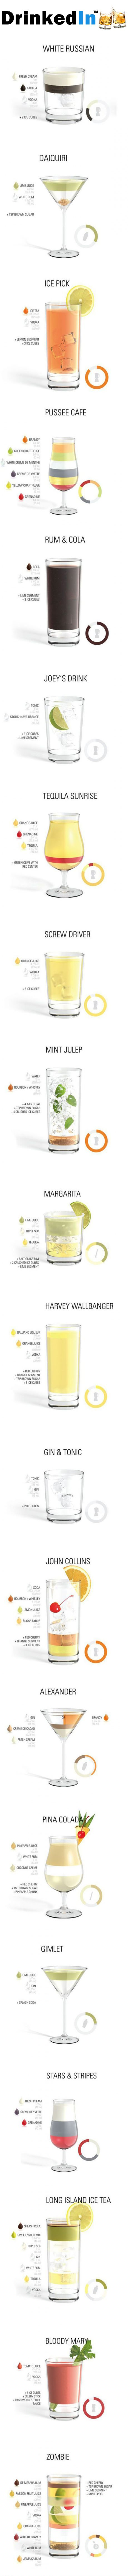 Here's a Mixed Drink Recipe Infographic just in time for your party this weekend. If you click on it, you'll get the full resolution image that's suitable for printing. Infographics seem to be so hot these days and there's nothing better than graphics of your favorite drinks.